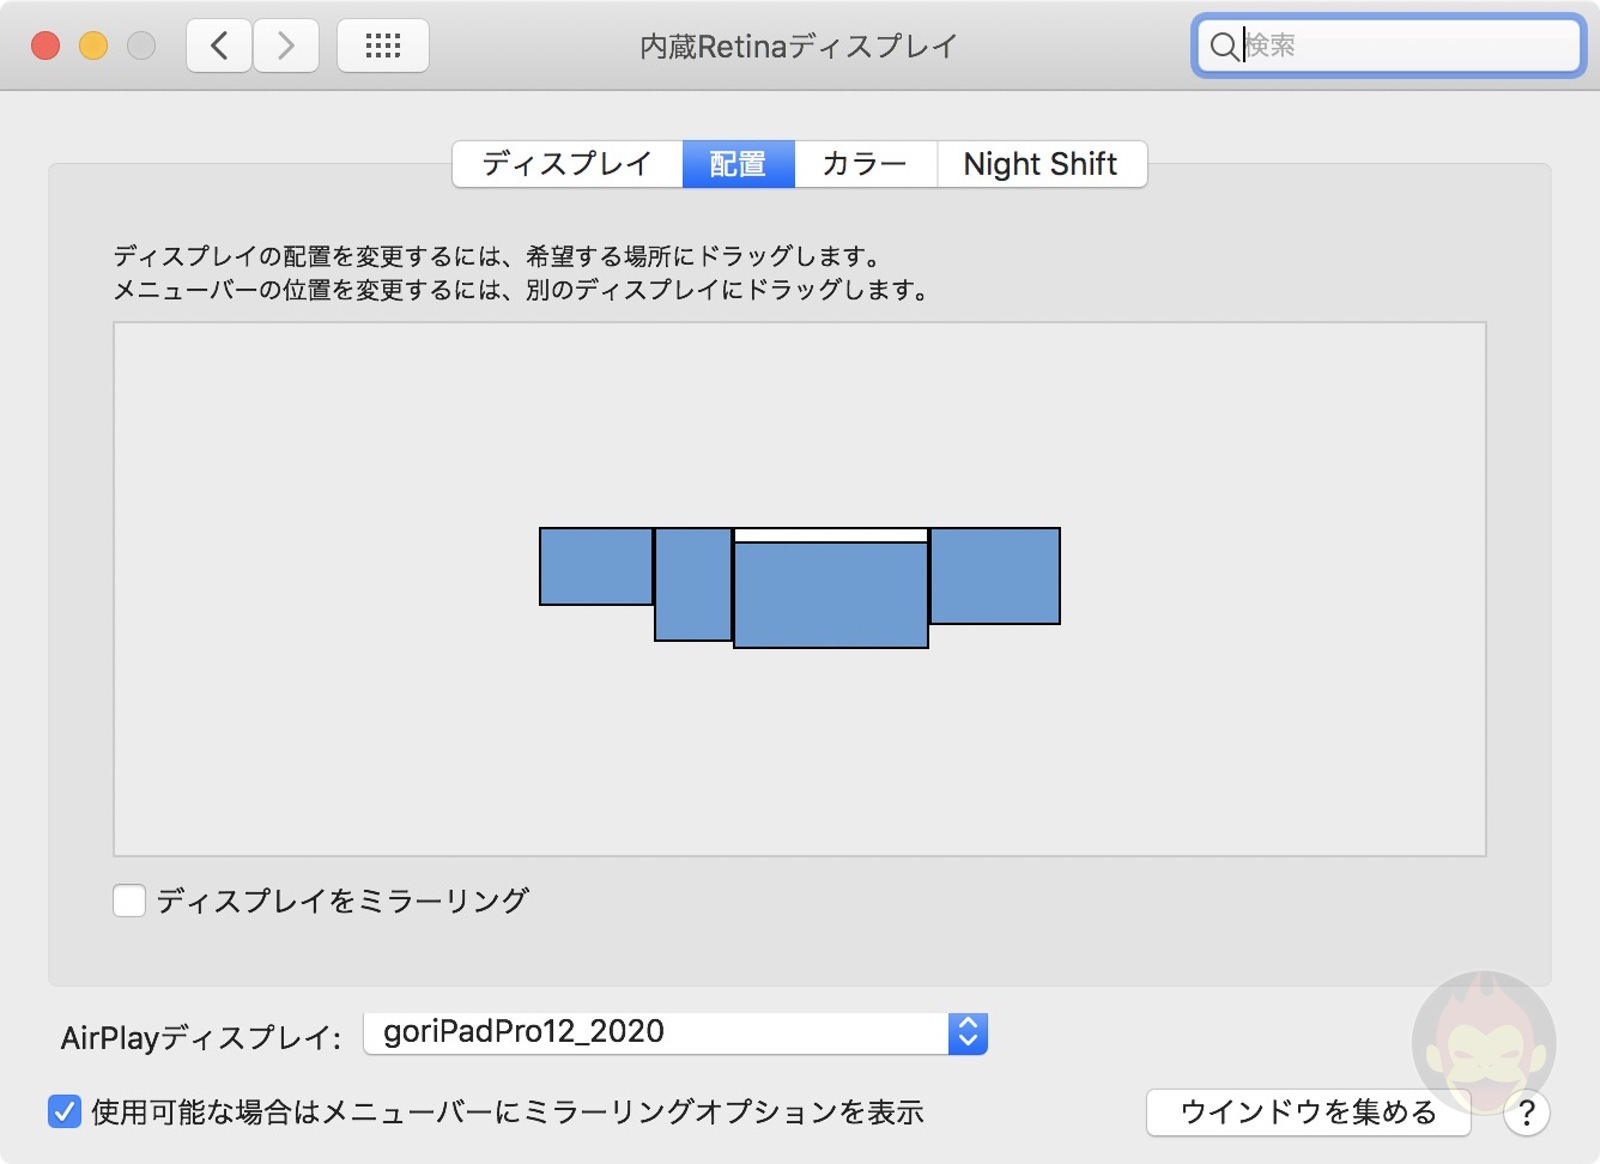 Duet-Luna-iPad-Display-for-mac-01.jpg